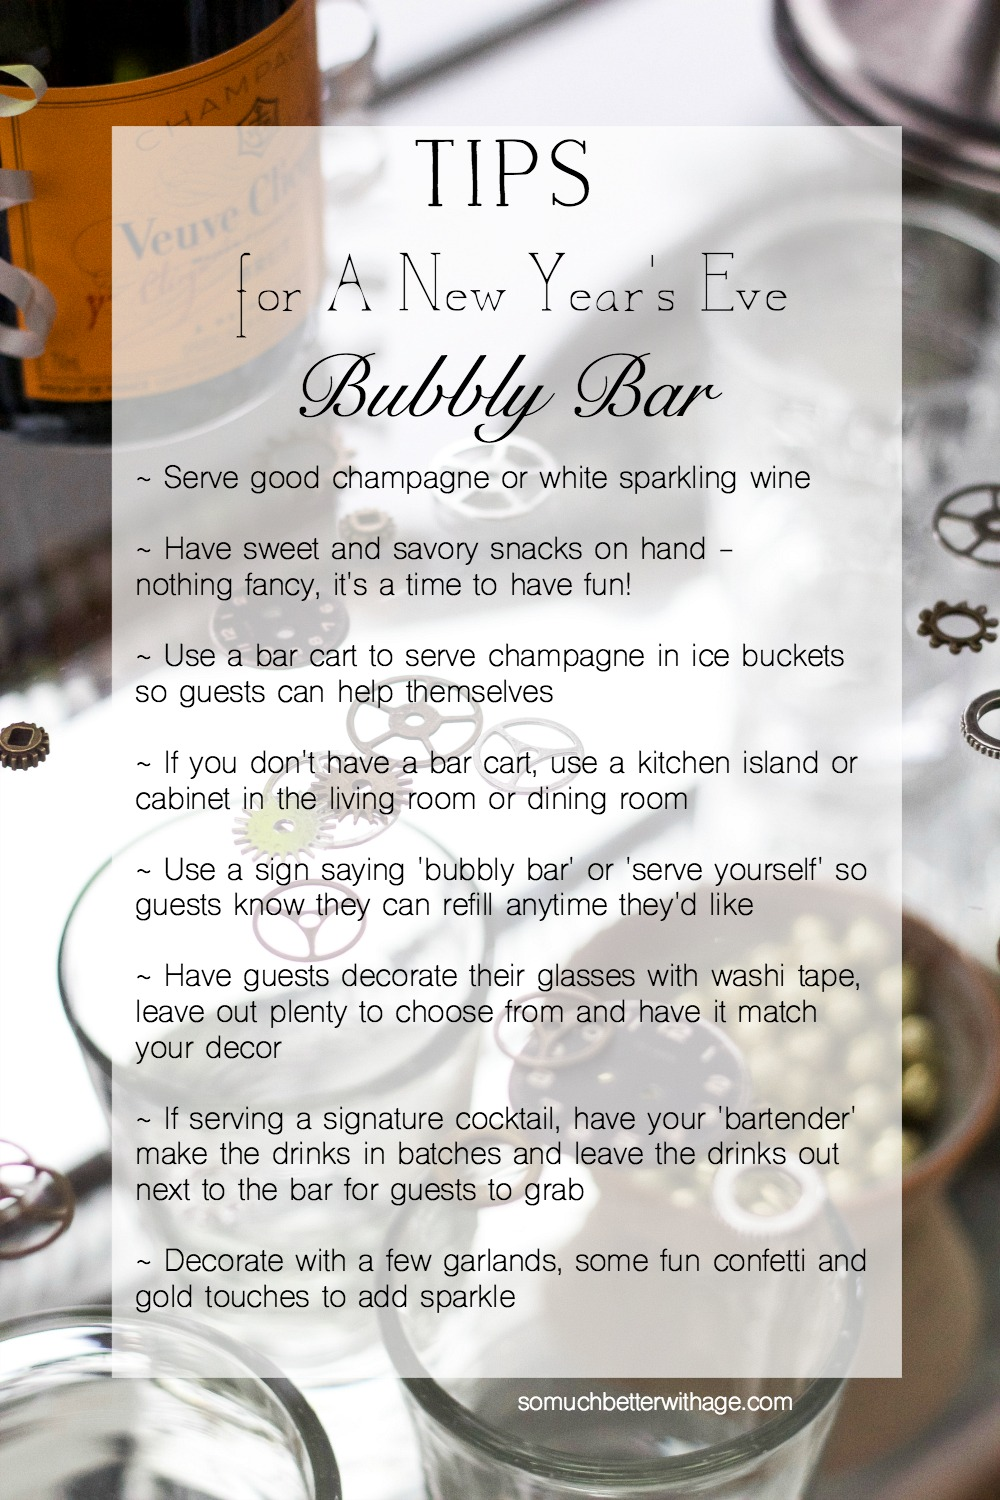 Tips for a New Year's Eve Bubbly Bar